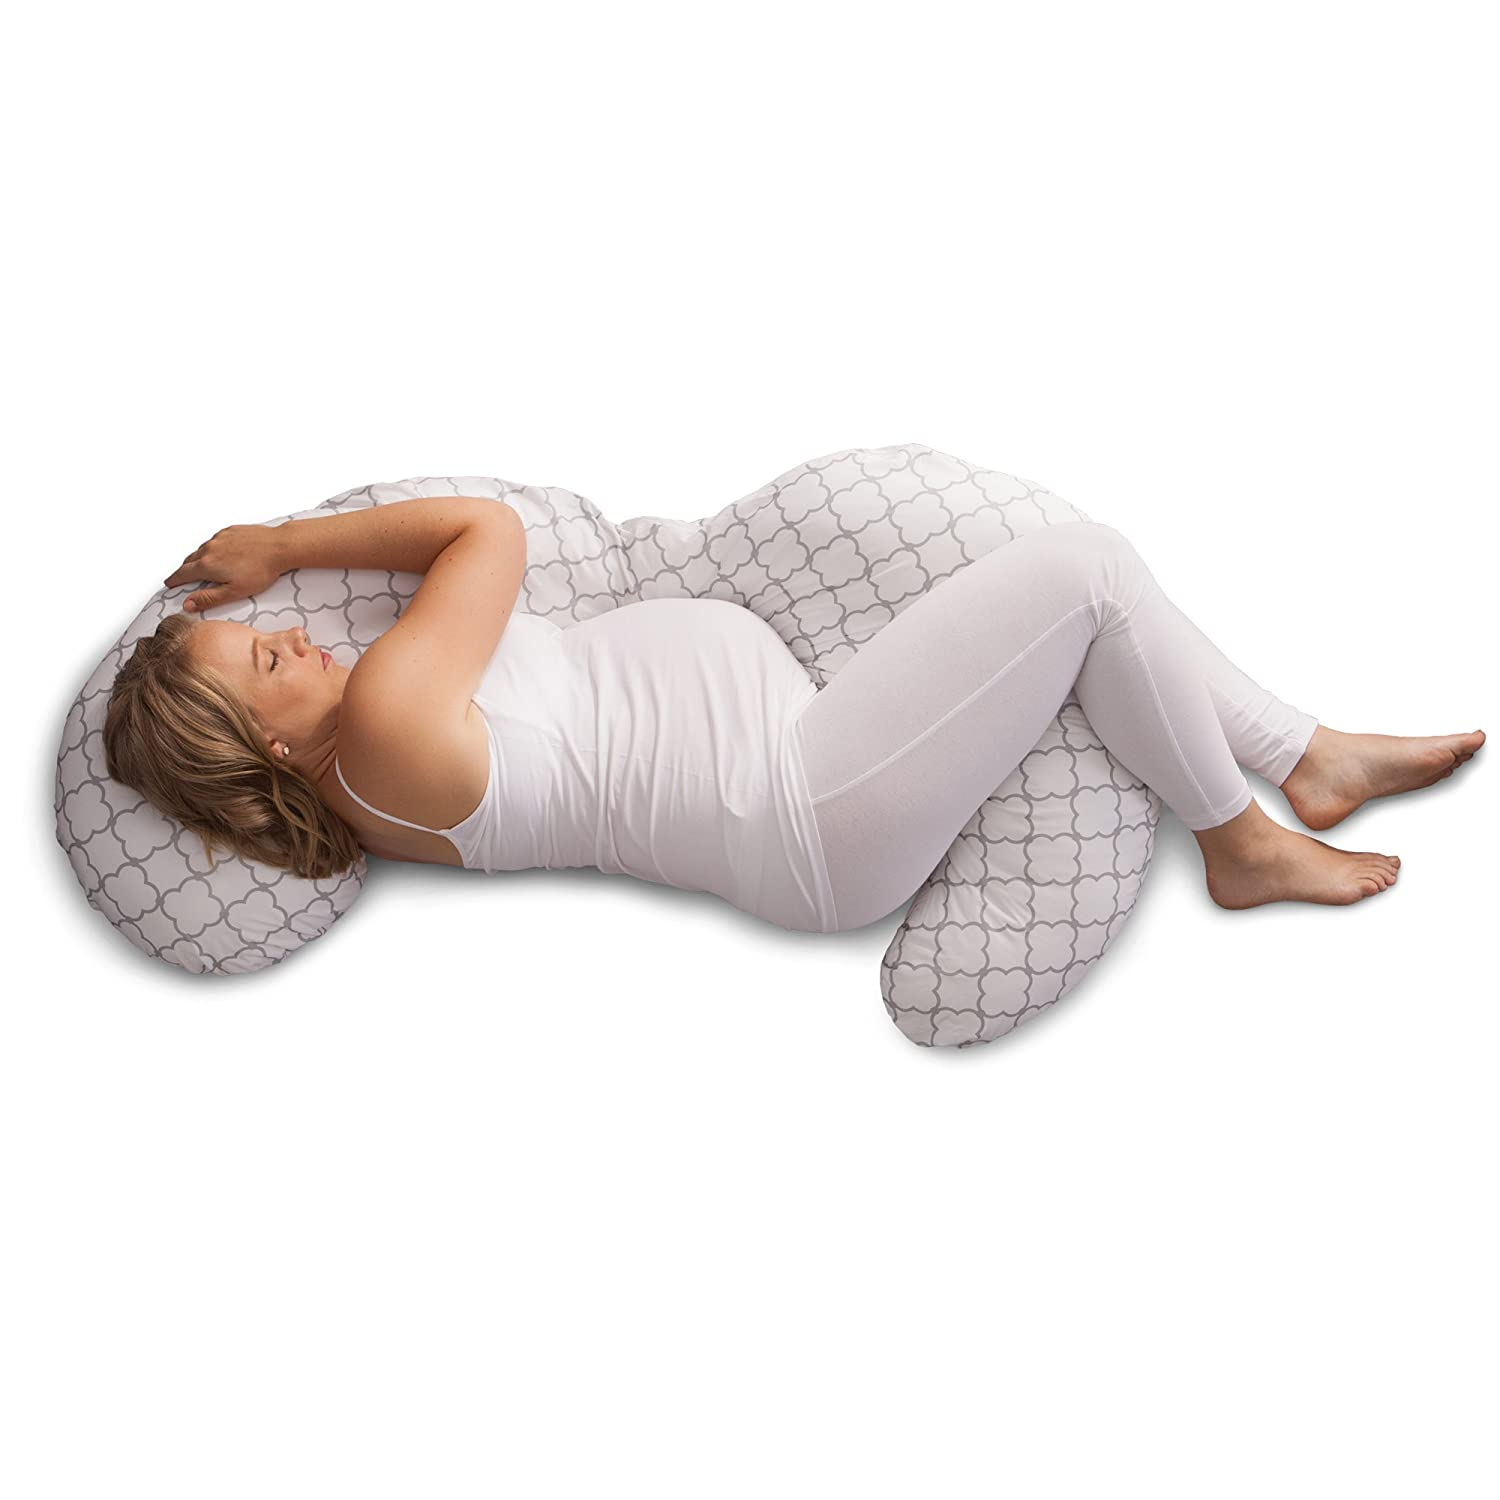 Boppy Slipcovered Pregnancy Body Pillow Trellis, White 5400412K AMC